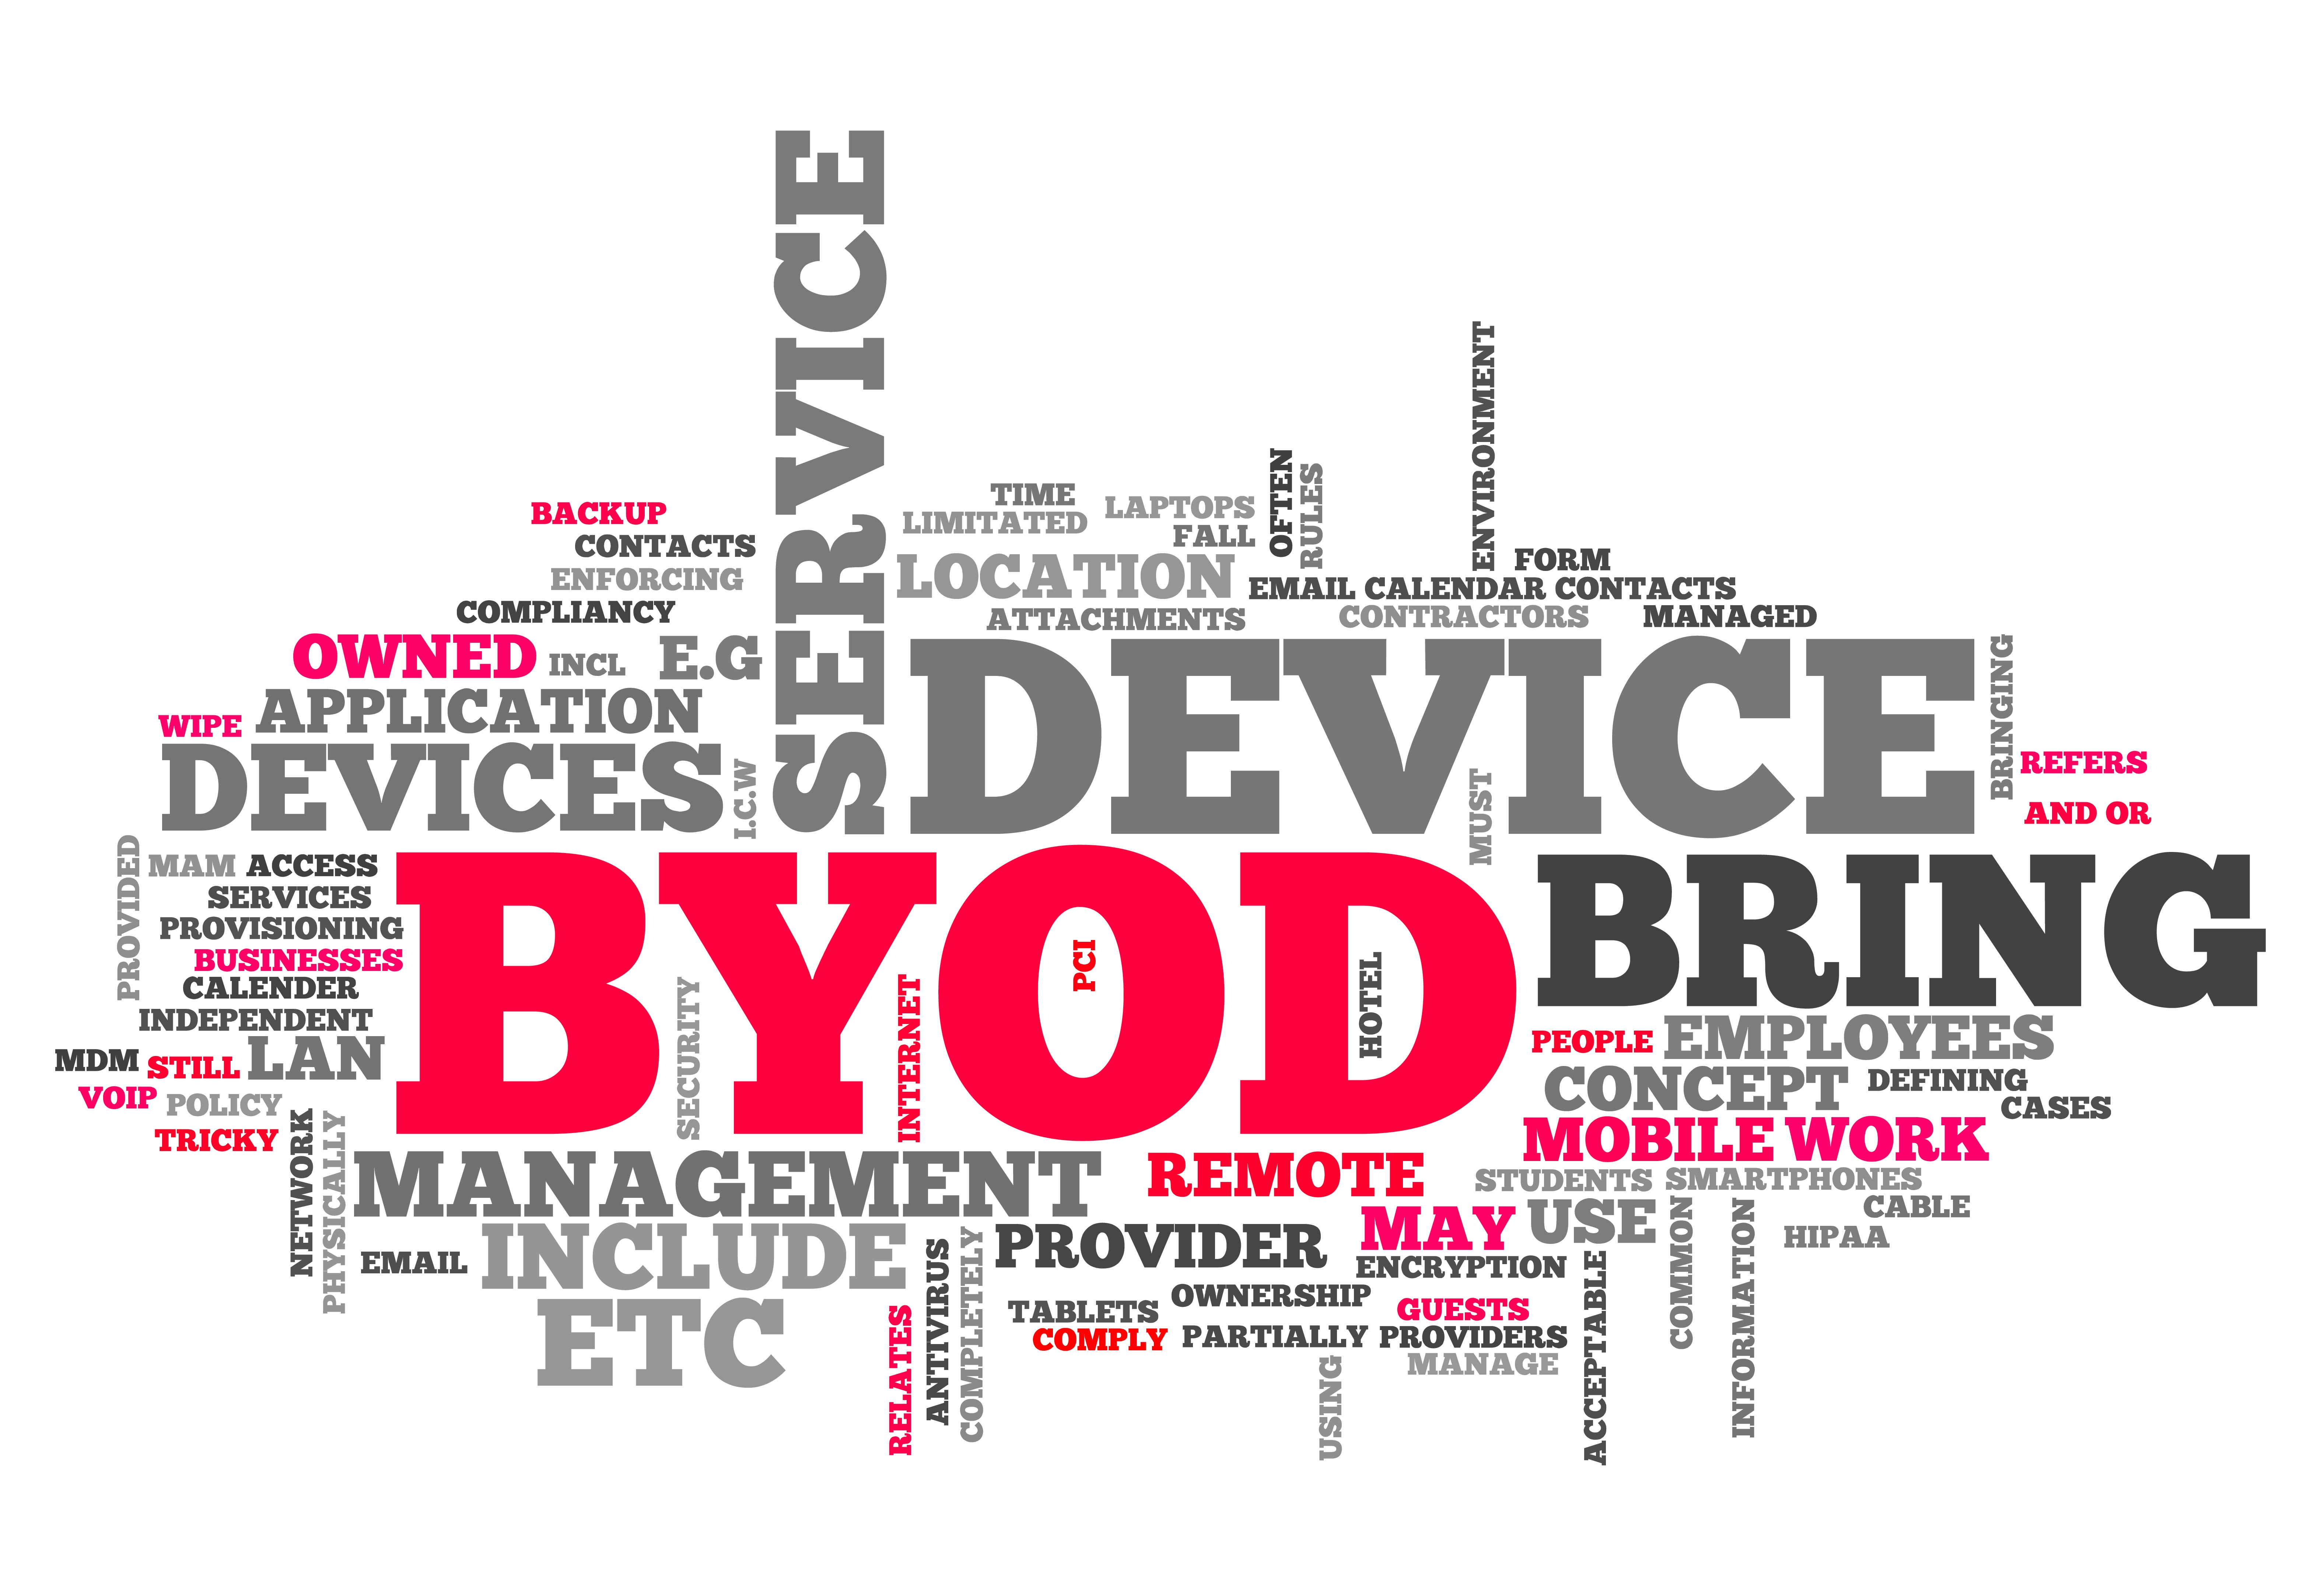 How to successfully introduce BYOD 'Bring Your Own Device' schemes into your organisation